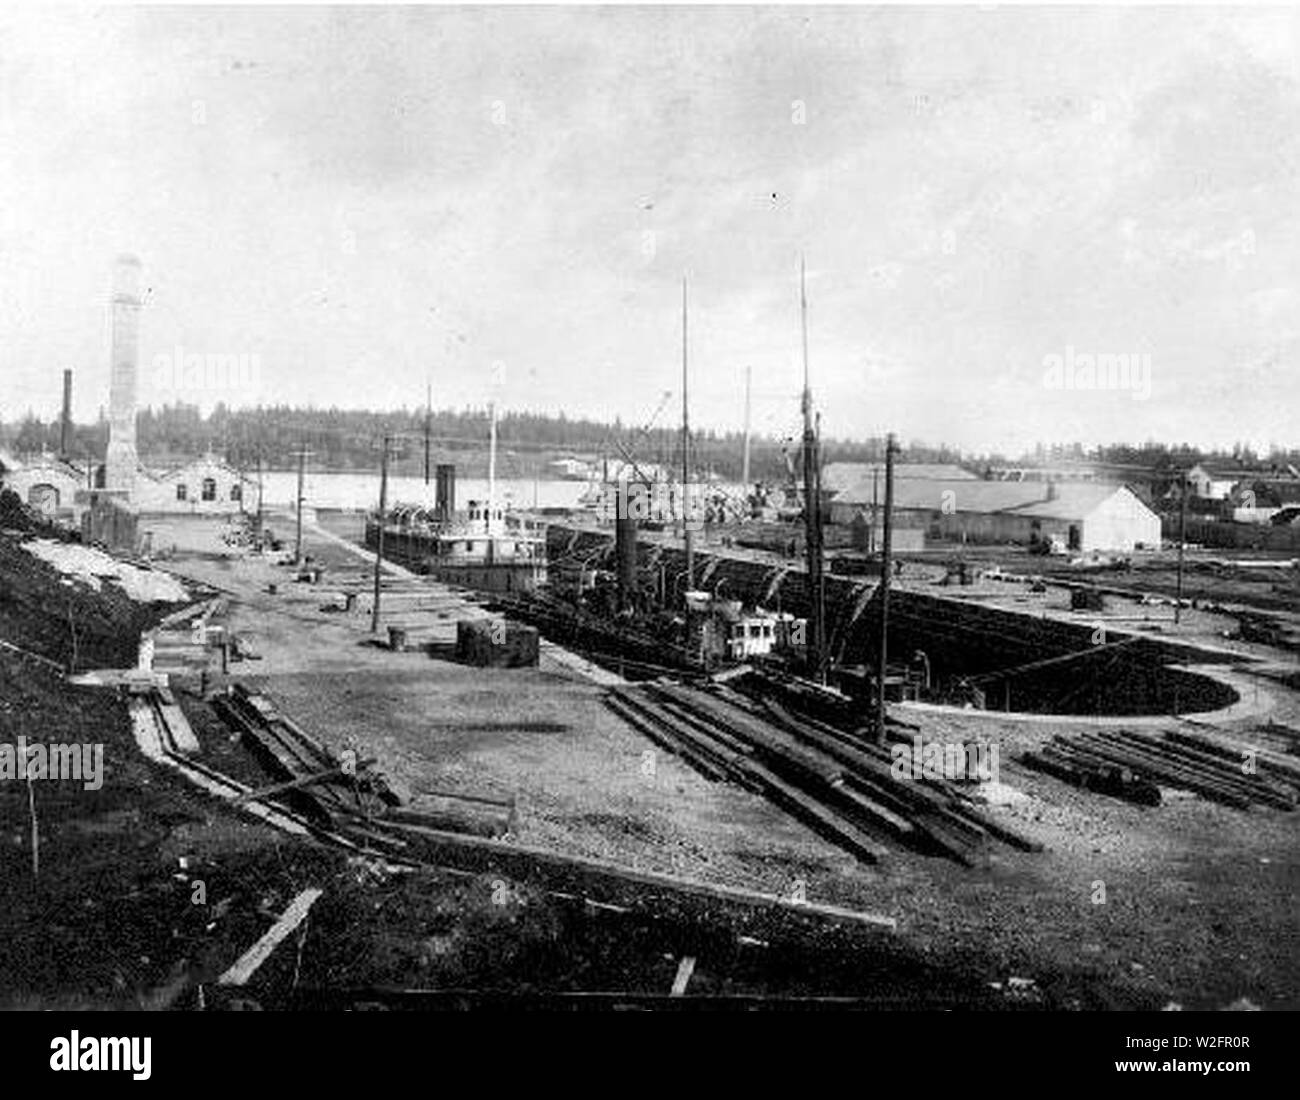 Charmer (steamboat) Cariboo and Fly (steamboat) in Esquimalt dry dock 1893. - Stock Image